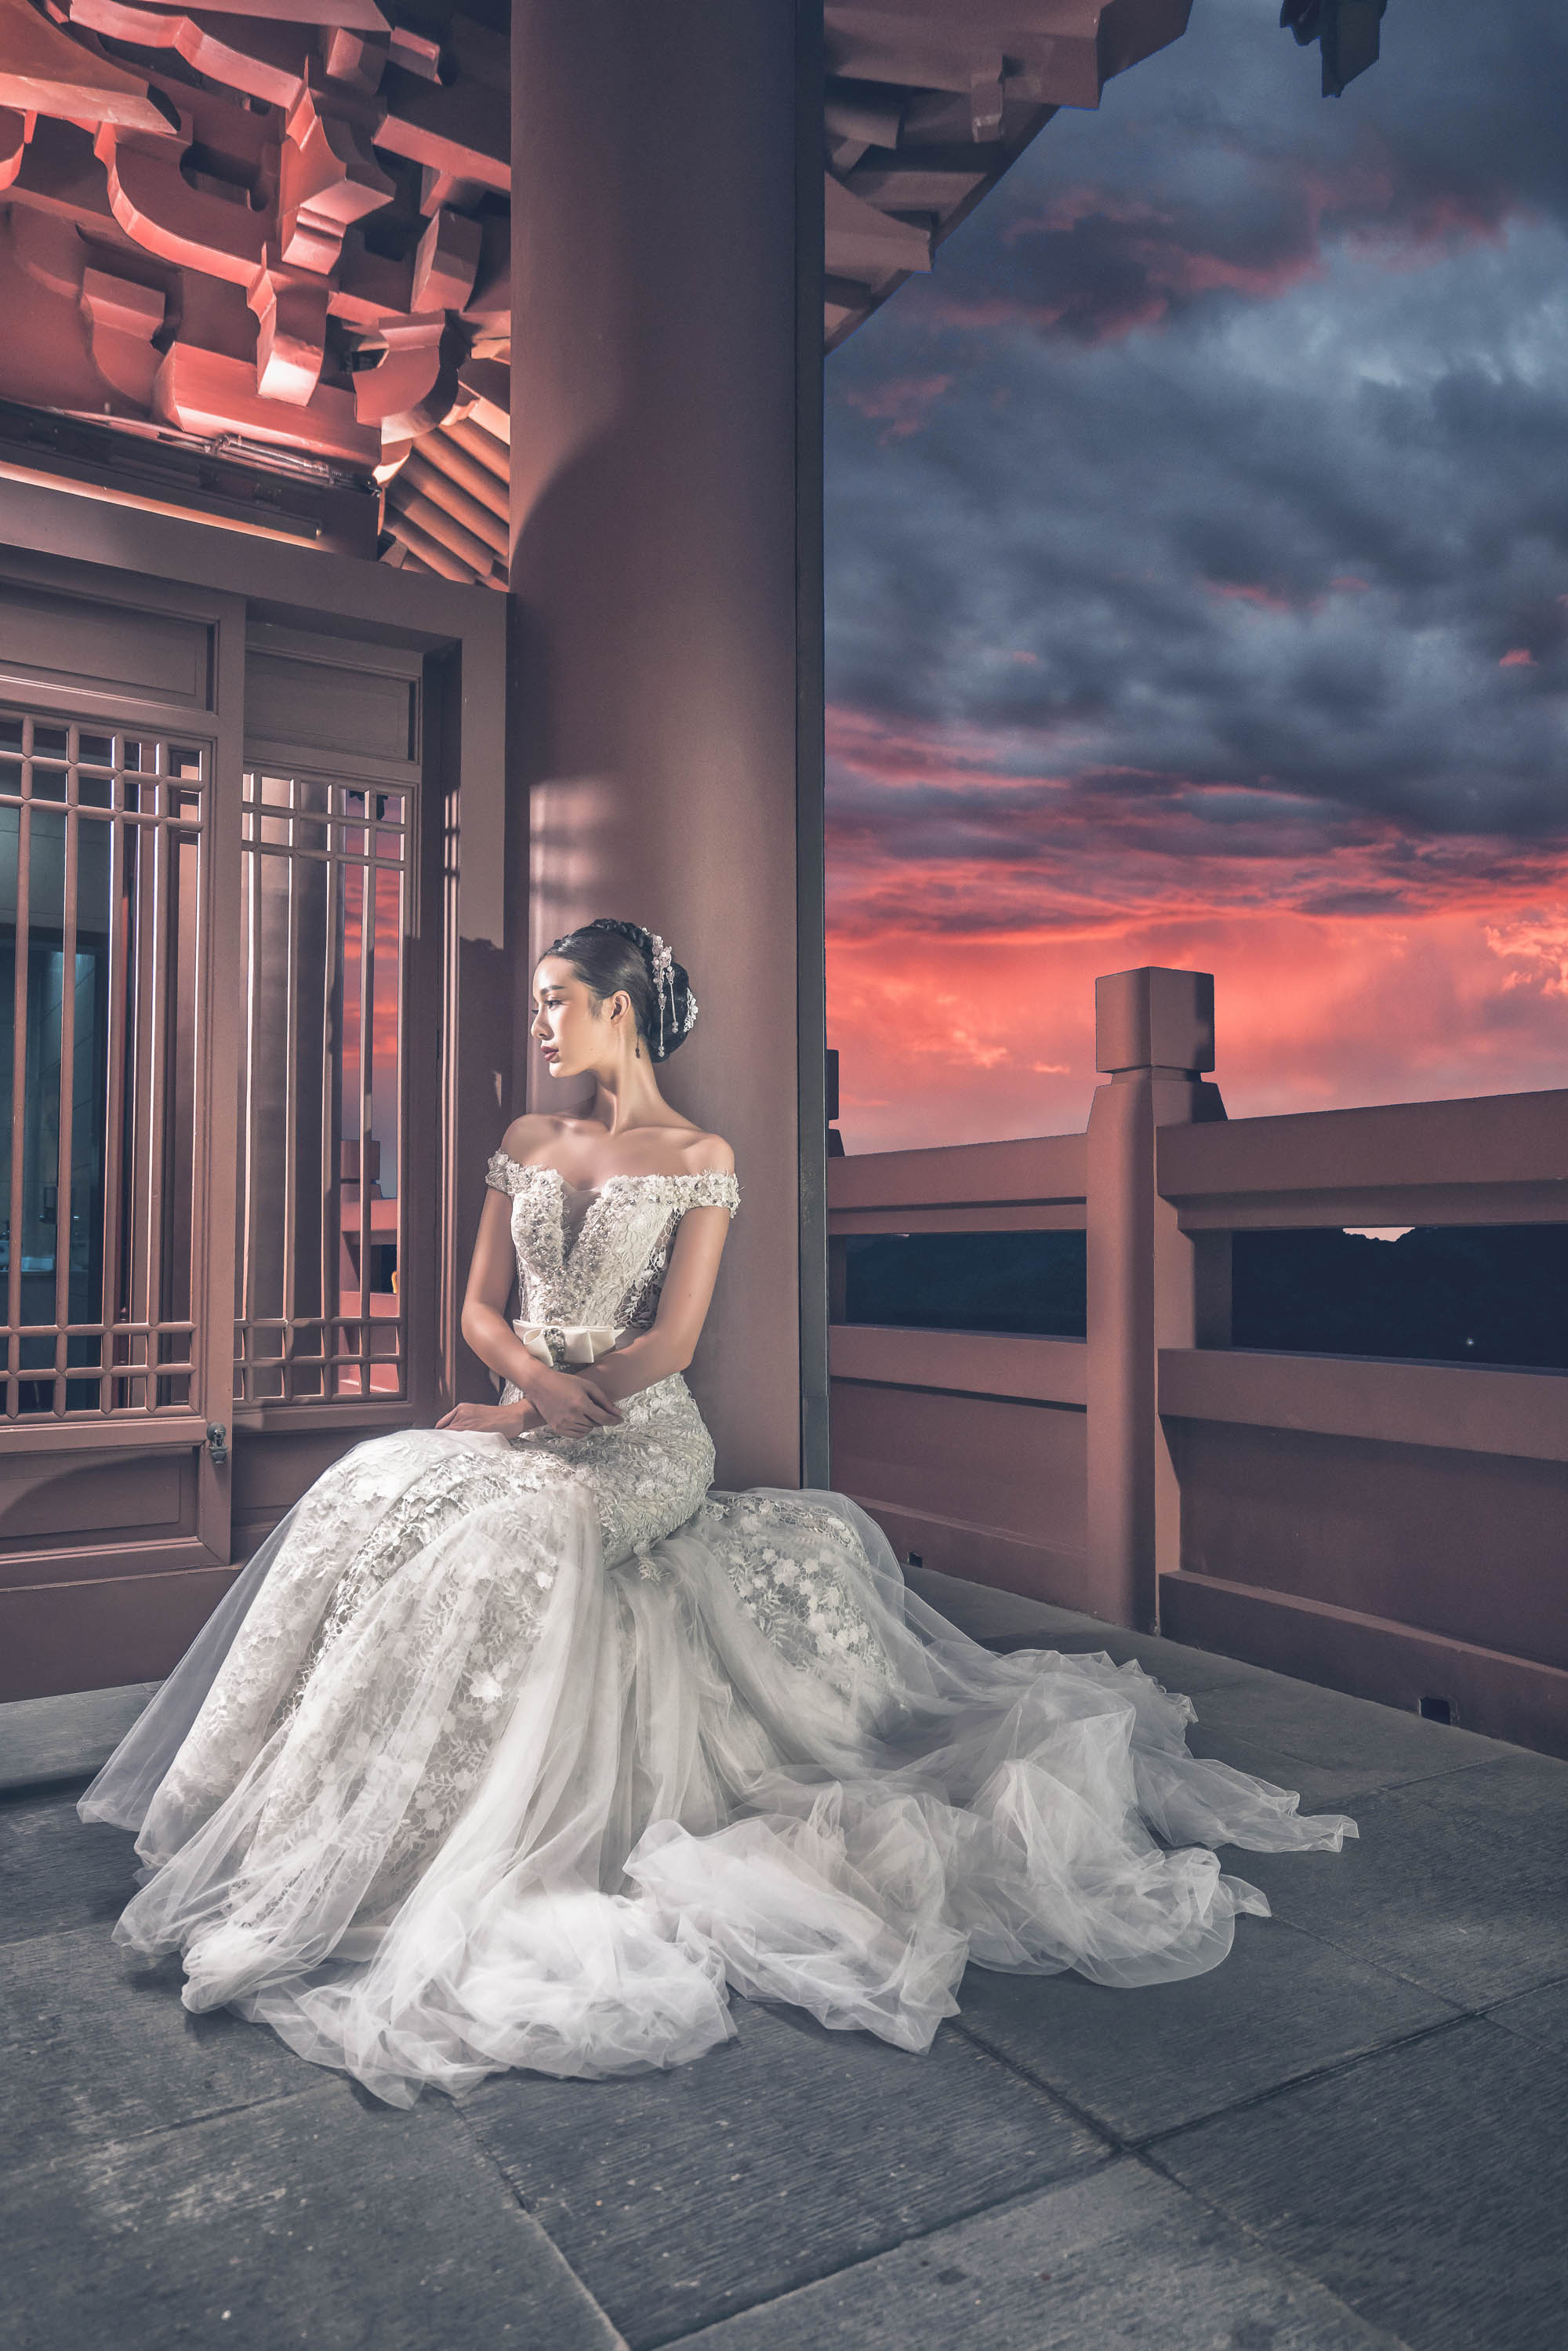 Bride in off-shoulder beaded gown sitting at Chinese temple during sunset, by CM Leung